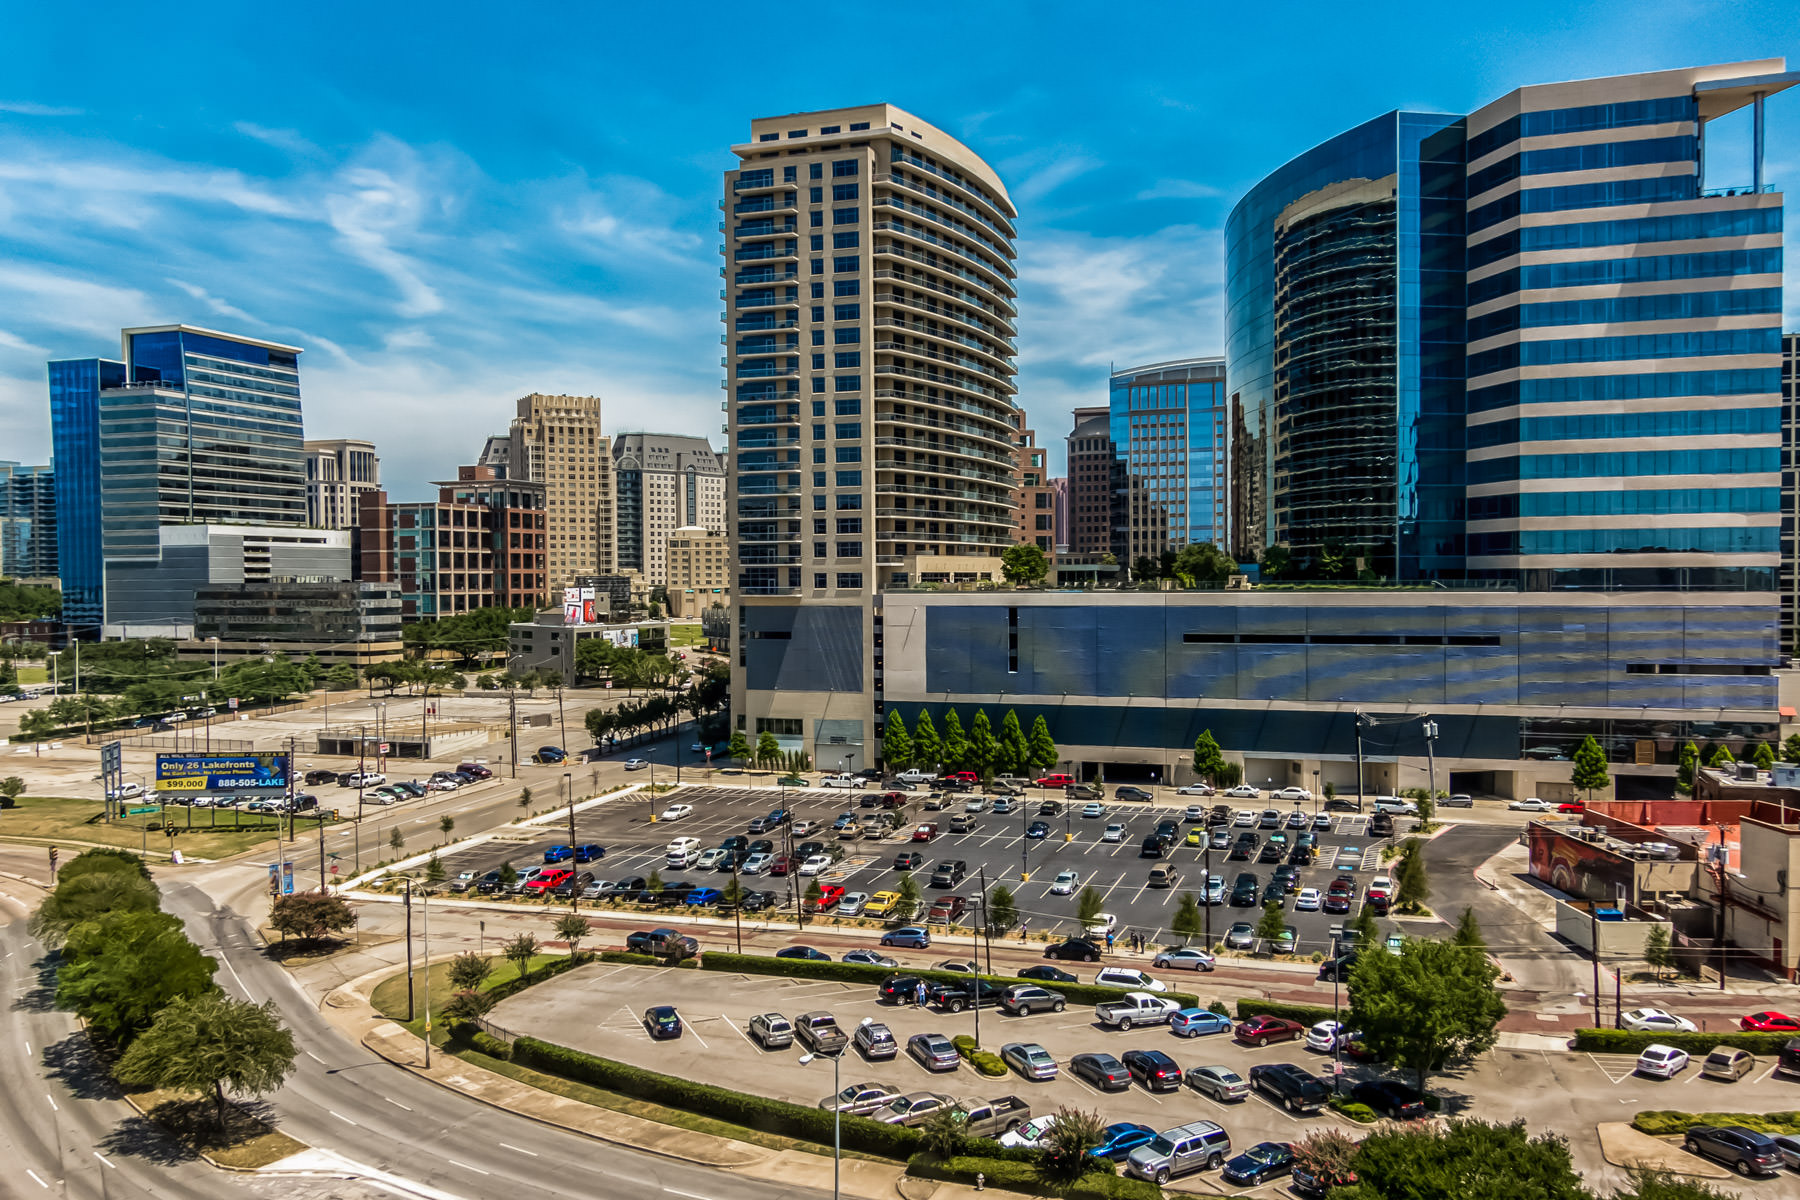 The varied architecture of Uptown Dallas, as seen from the Perot Museum of Nature and Science.